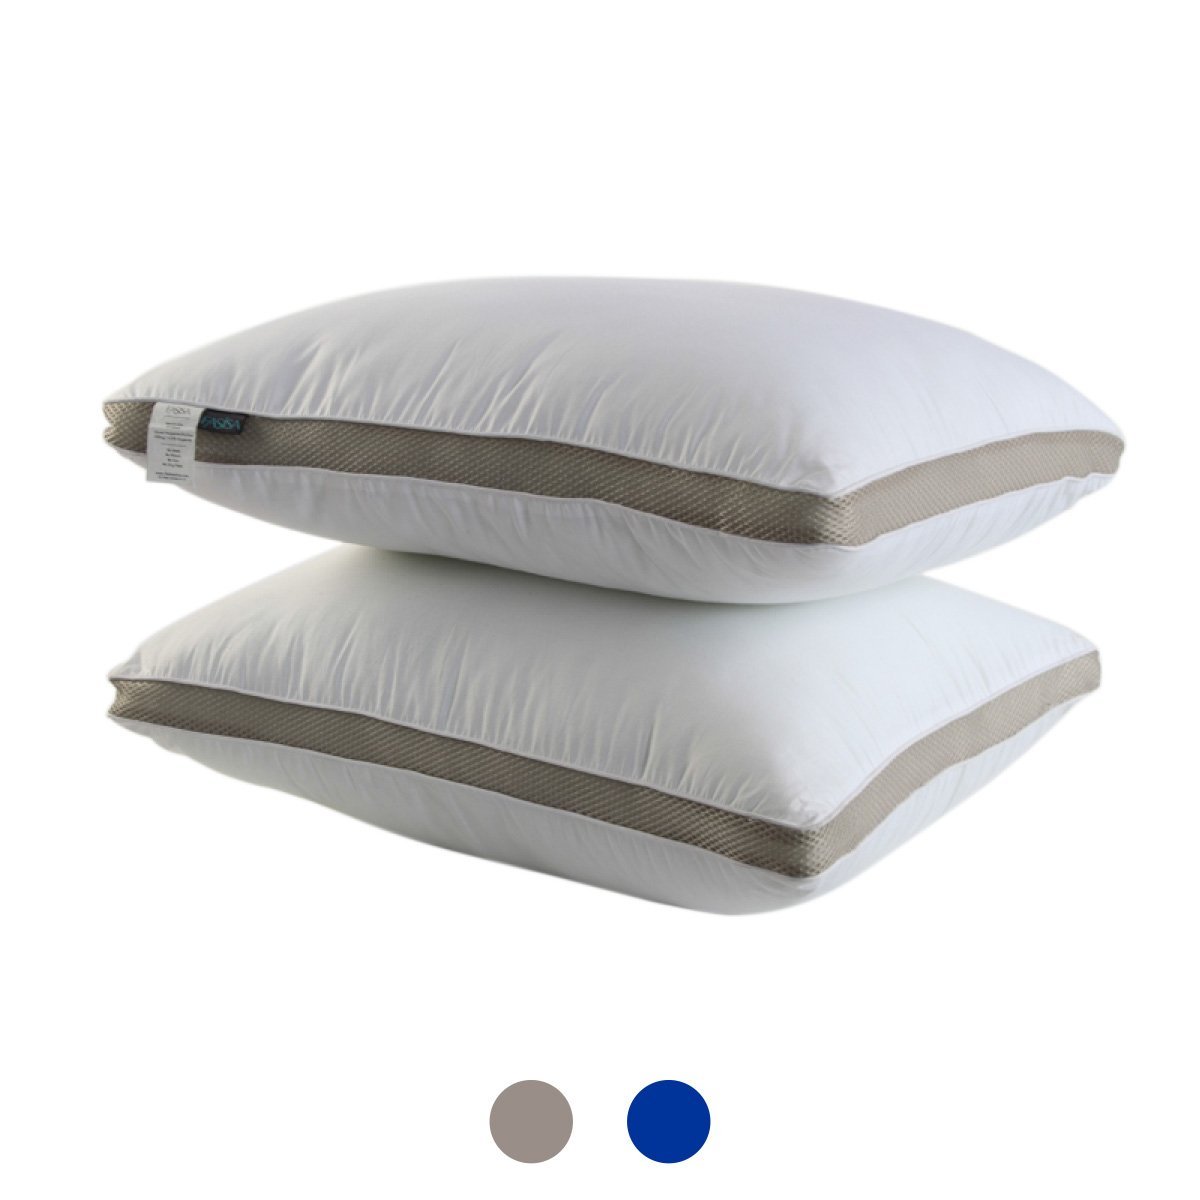 RoyalPie Gusseted Quilted 100% cotton Pillow - Hypo Allergenic and Easy Care - Premium Quality Pillows ( Twin - 2 Pack, Silver)